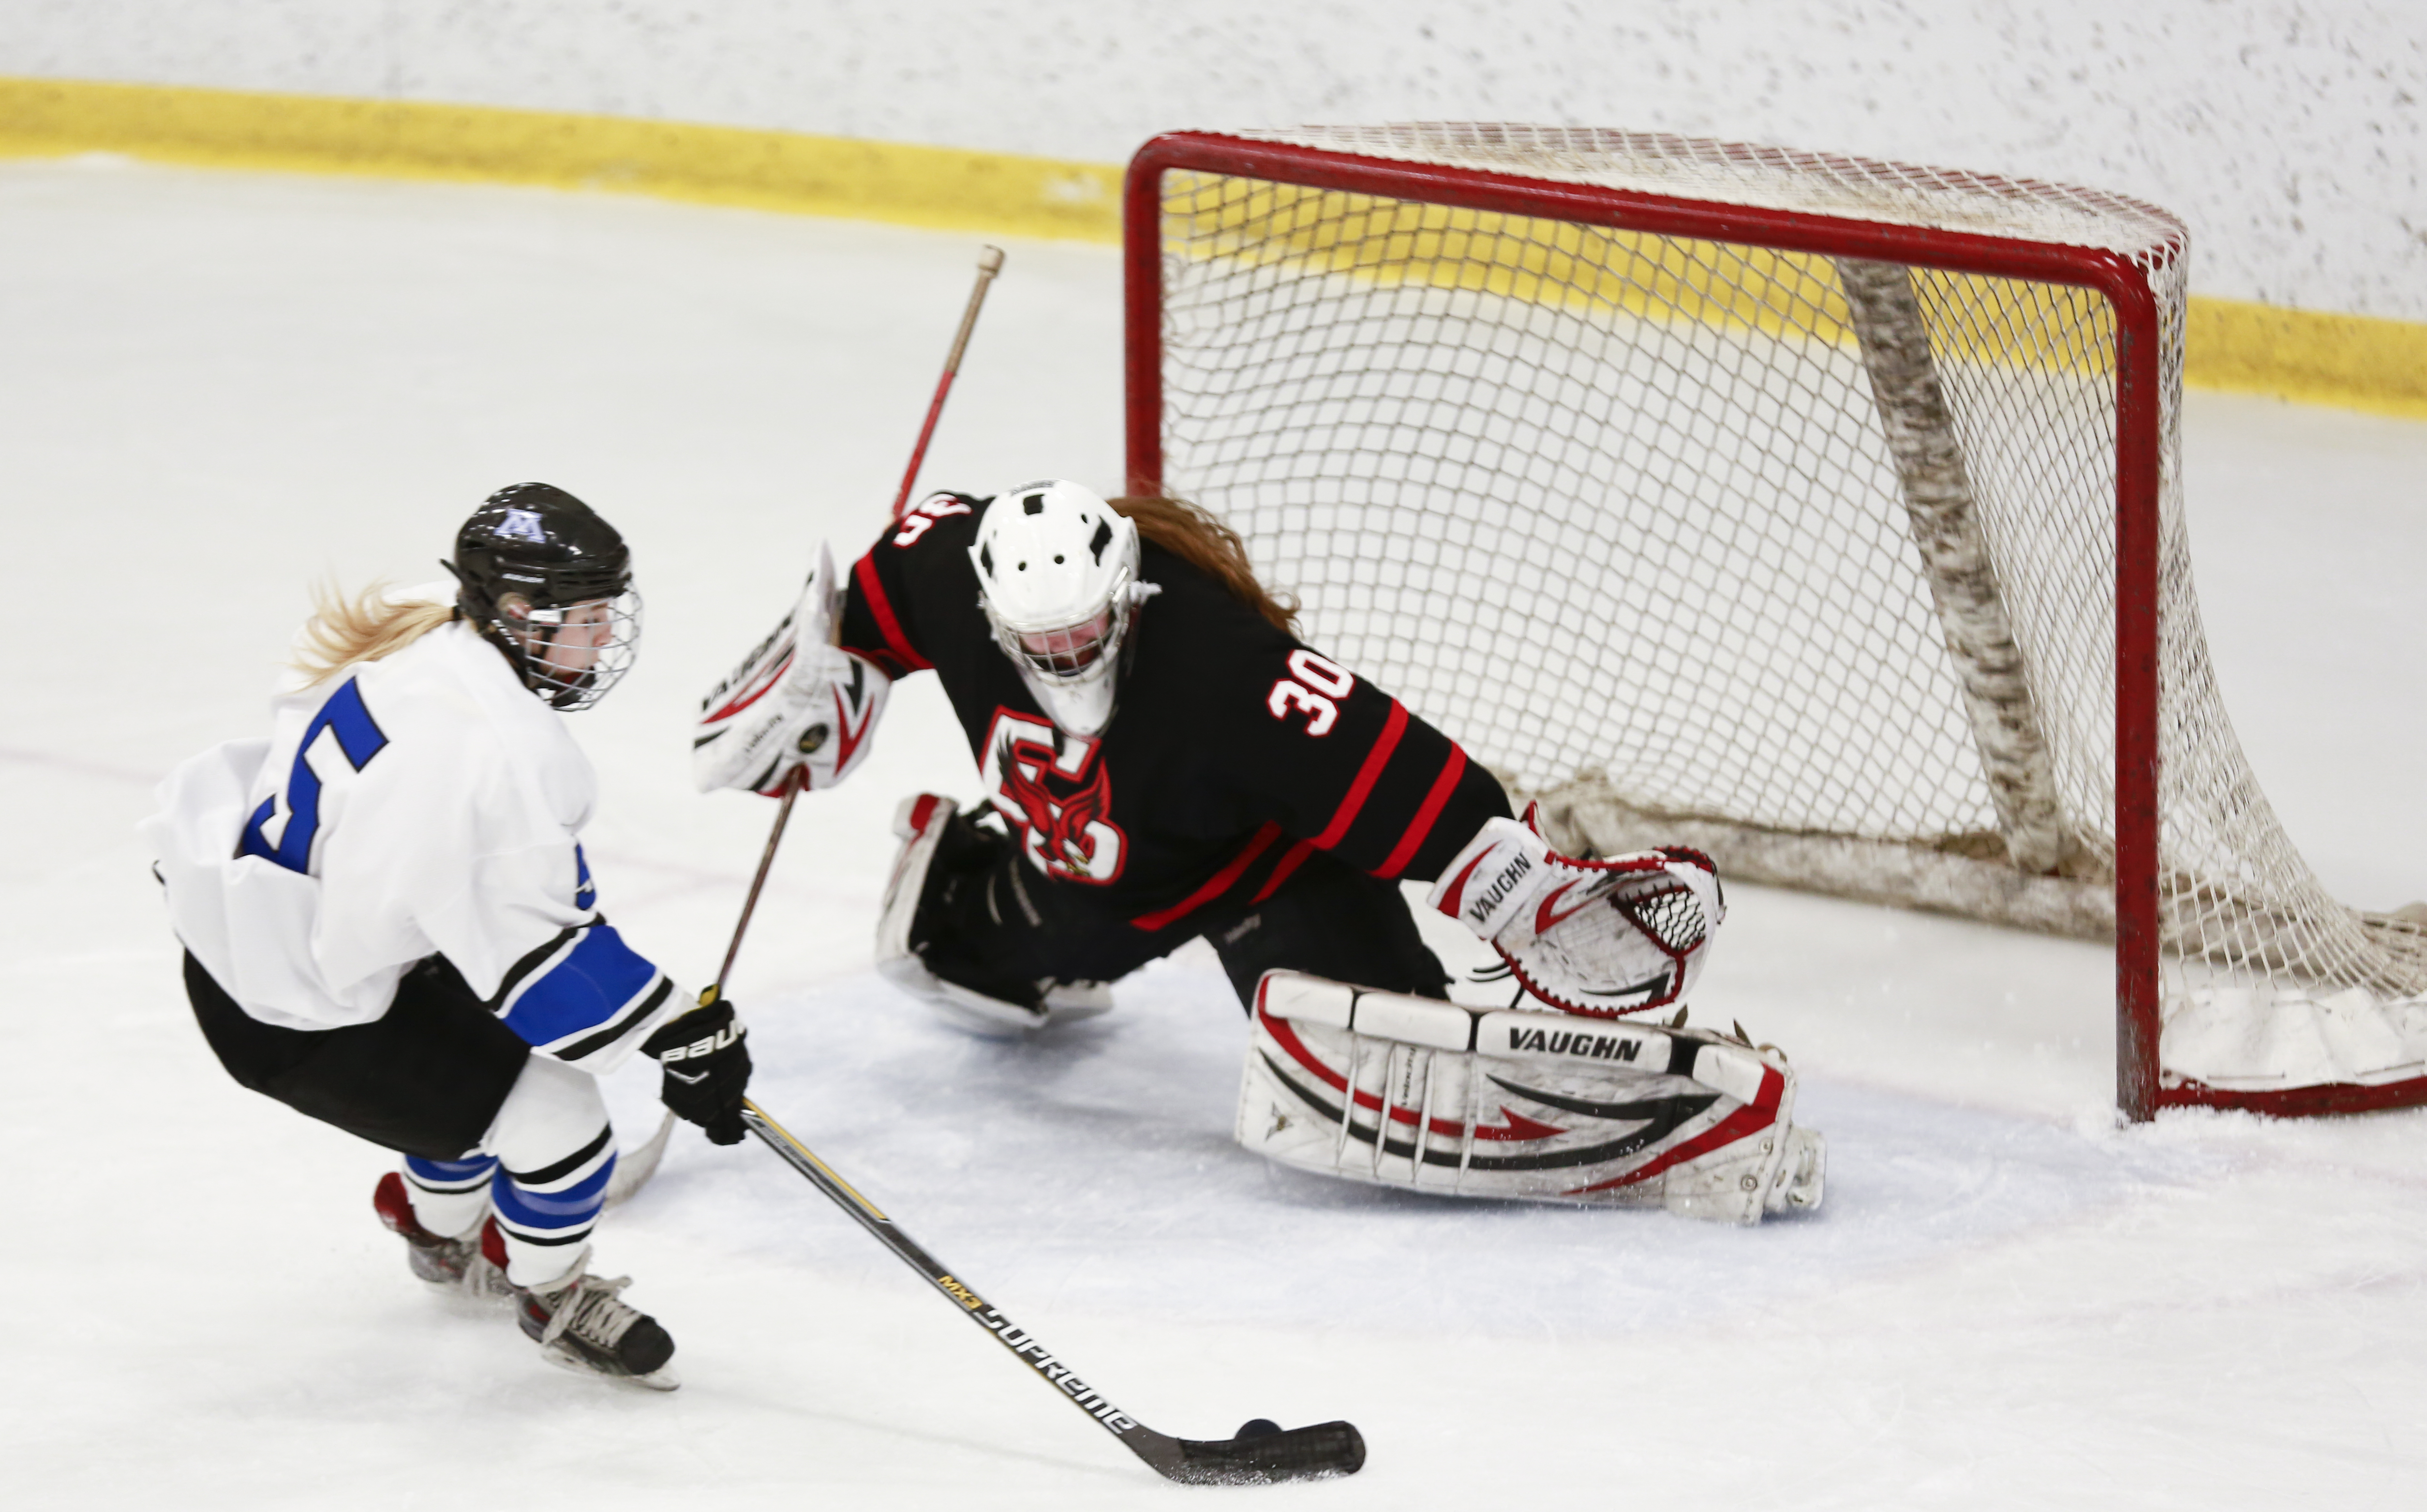 Minnetonka's Presley Norby (5) rushes to the Eagles goal to score against goaltender Alexa Dobchuk (30). Norby scored 3 goals during the game earning a hat trick and leading the Minnetonka Skippers to a victory at home, 3-2. Photo by Chris Juhn